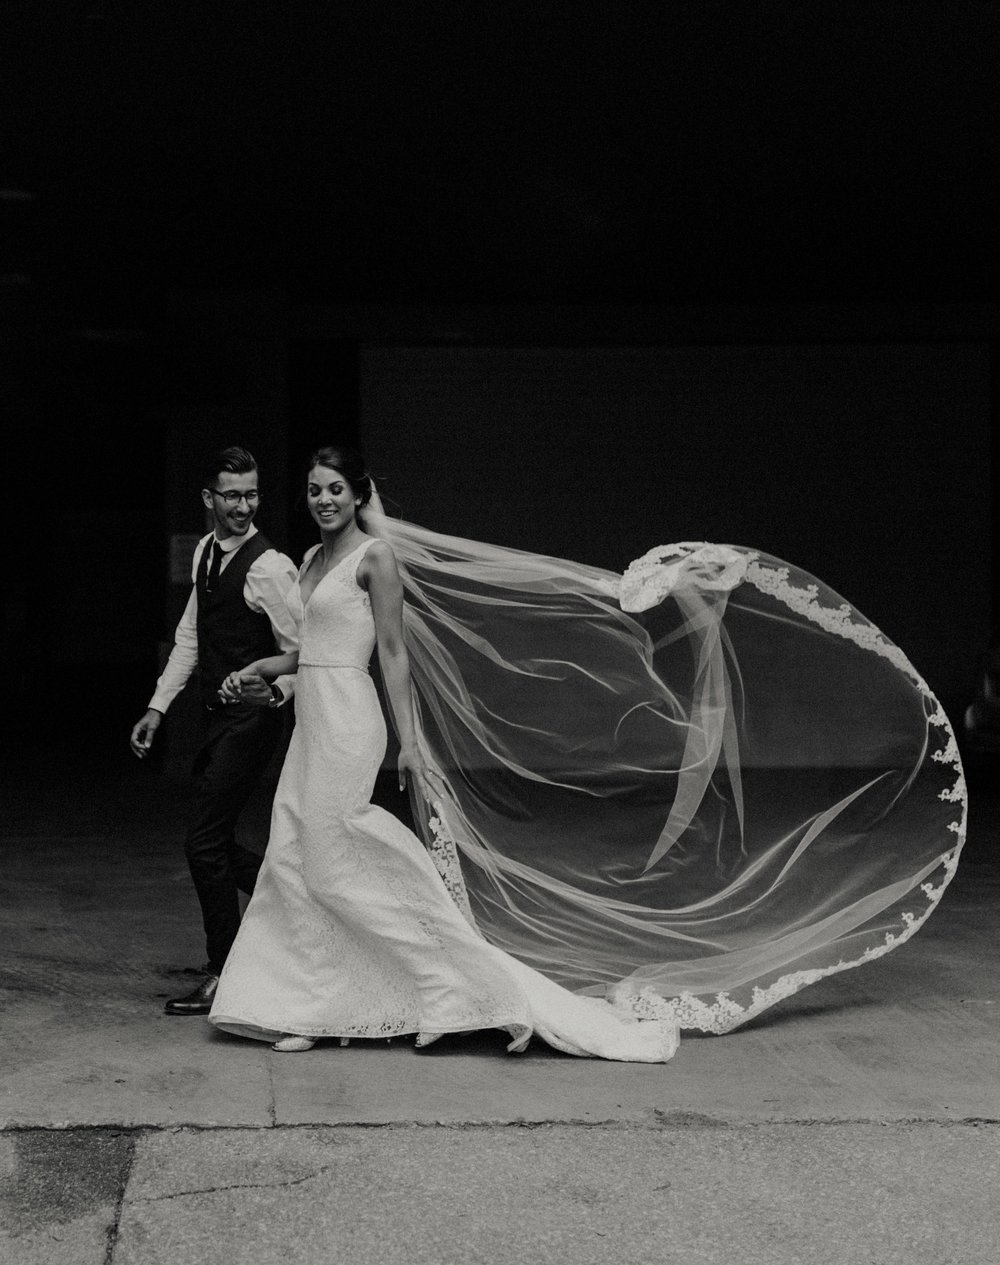 AM_ROYALCONSERVATORY_WEDDING_INNAYAS-780ASE.jpg